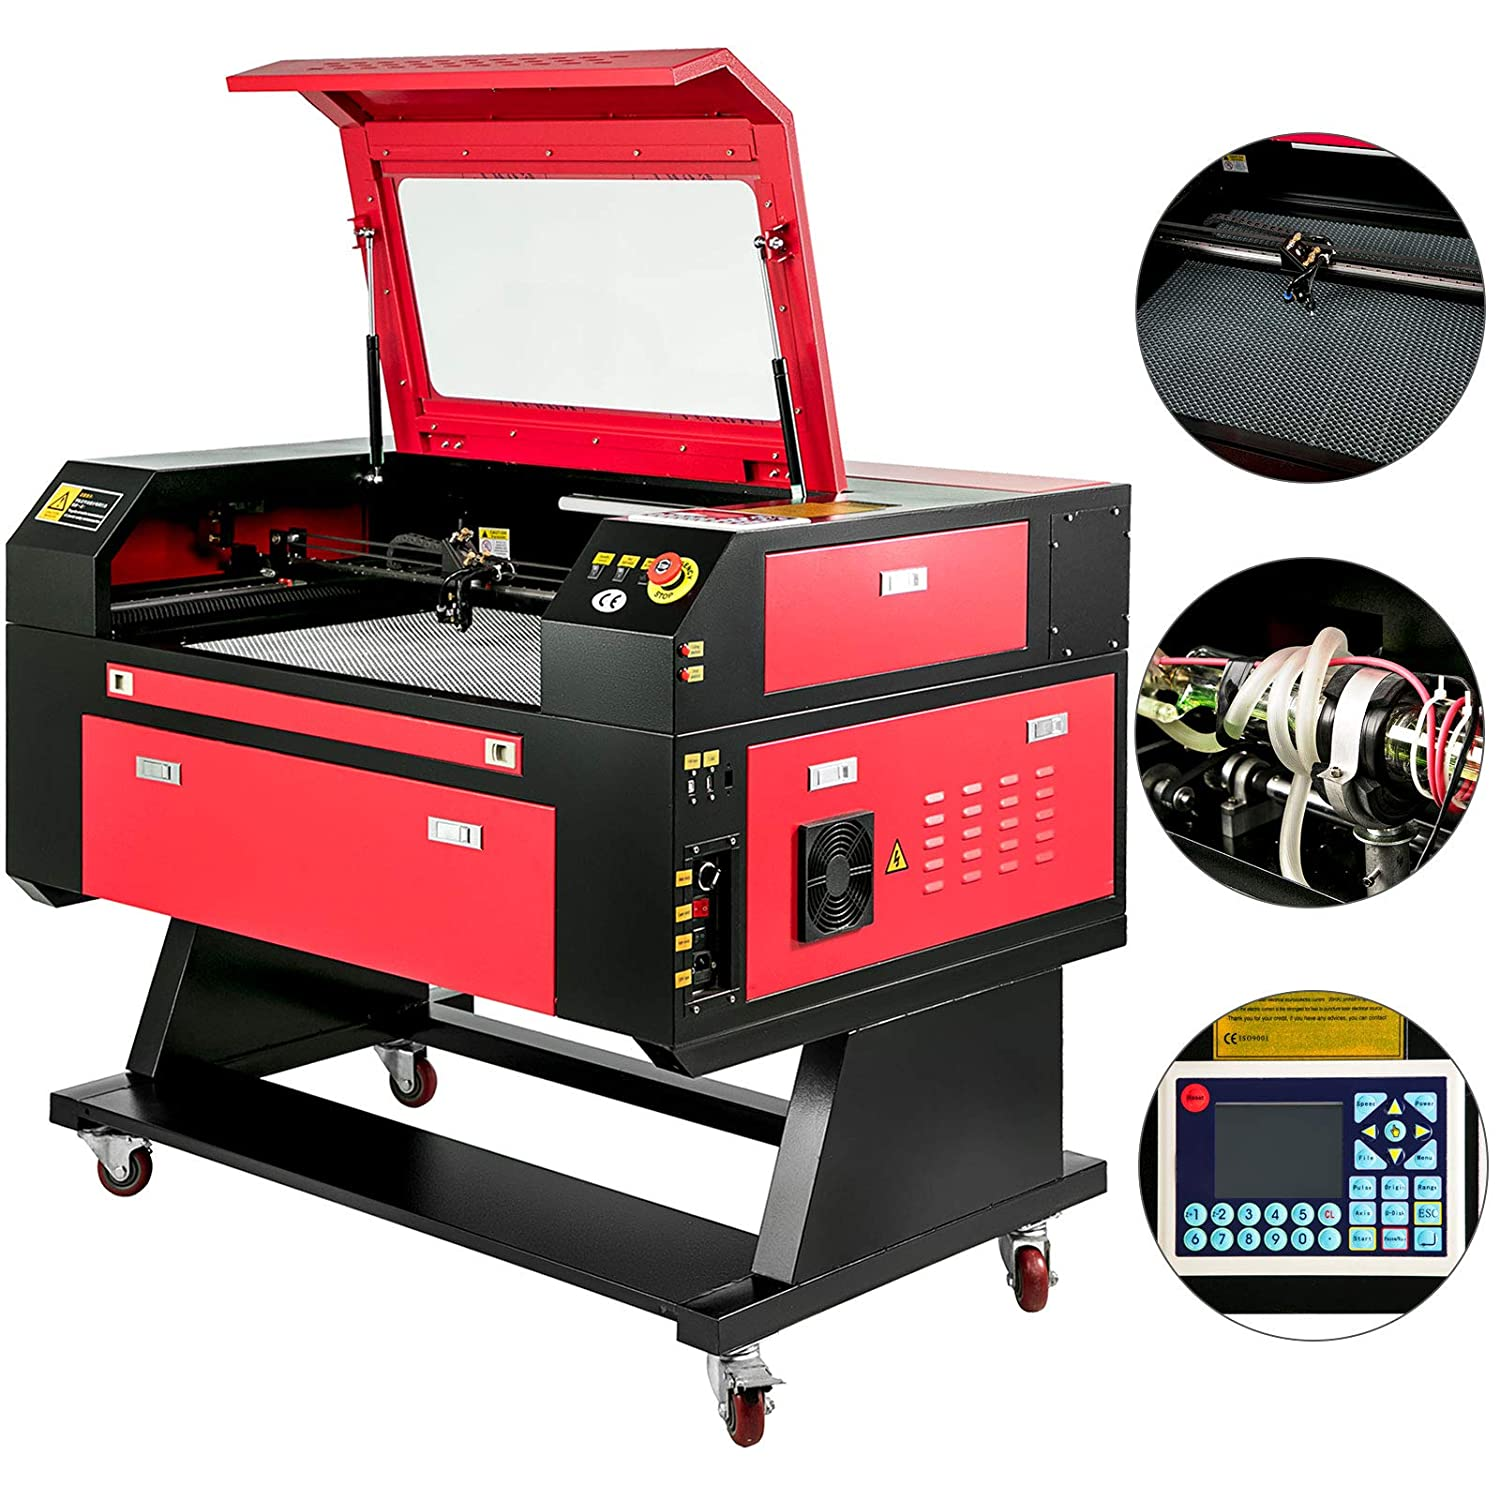 AMACCHI Macchina Per Incisione 700x500mm Tagliatrice Taglio Laser 60W Laser Engraving Machine Gas Co2 con USB Interfaccia